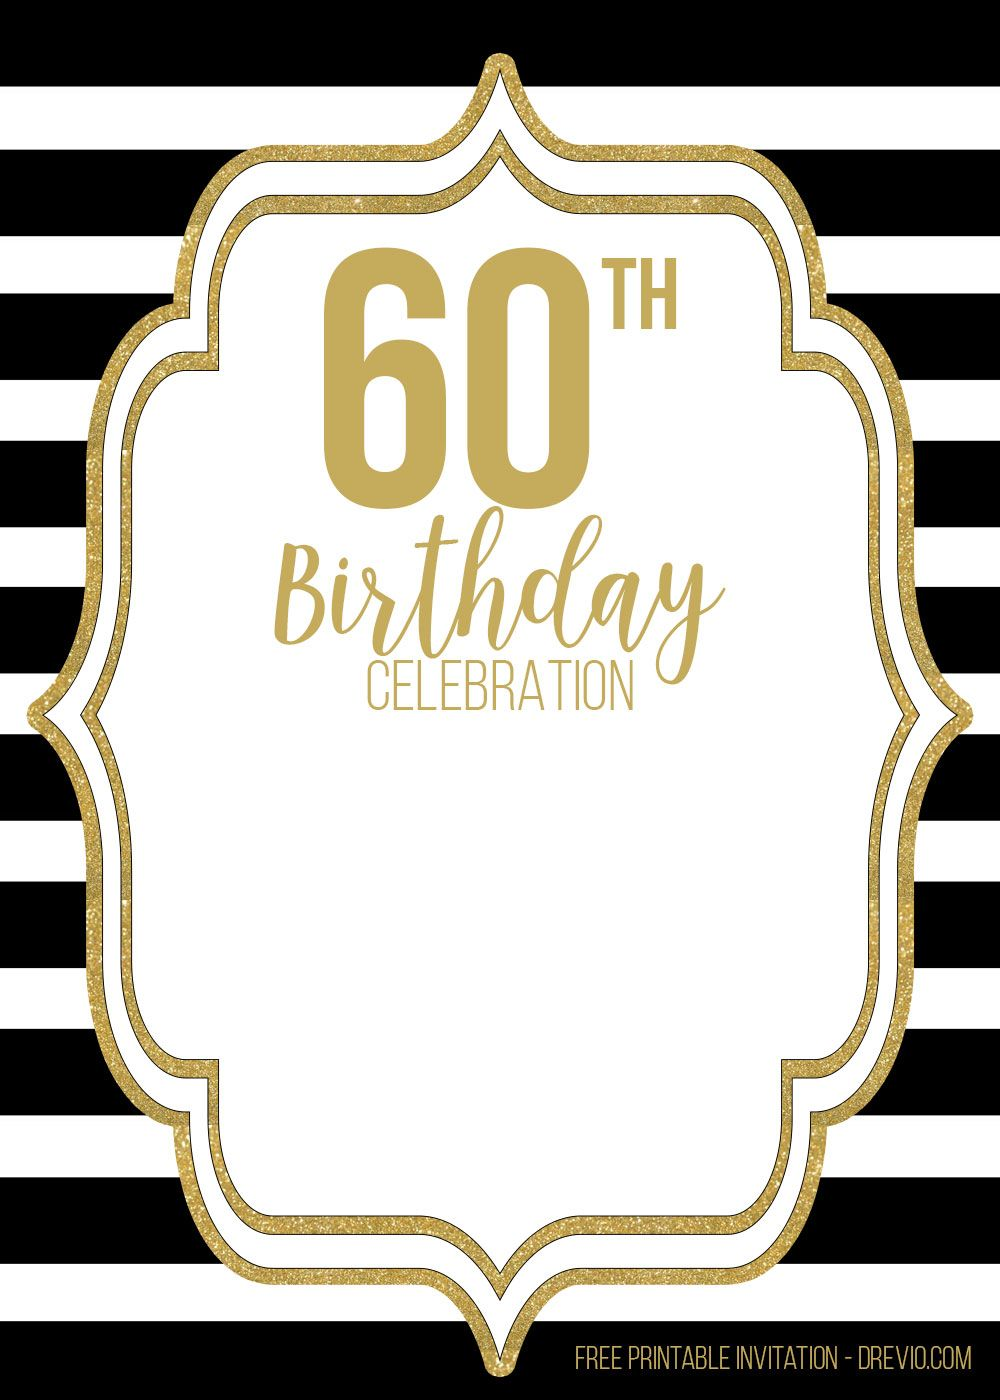 Free Printable Black And Gold 60th Birthday Invitation Templates 60th Birthday Party Invitations 60th Birthday Invitations Party Invite Template